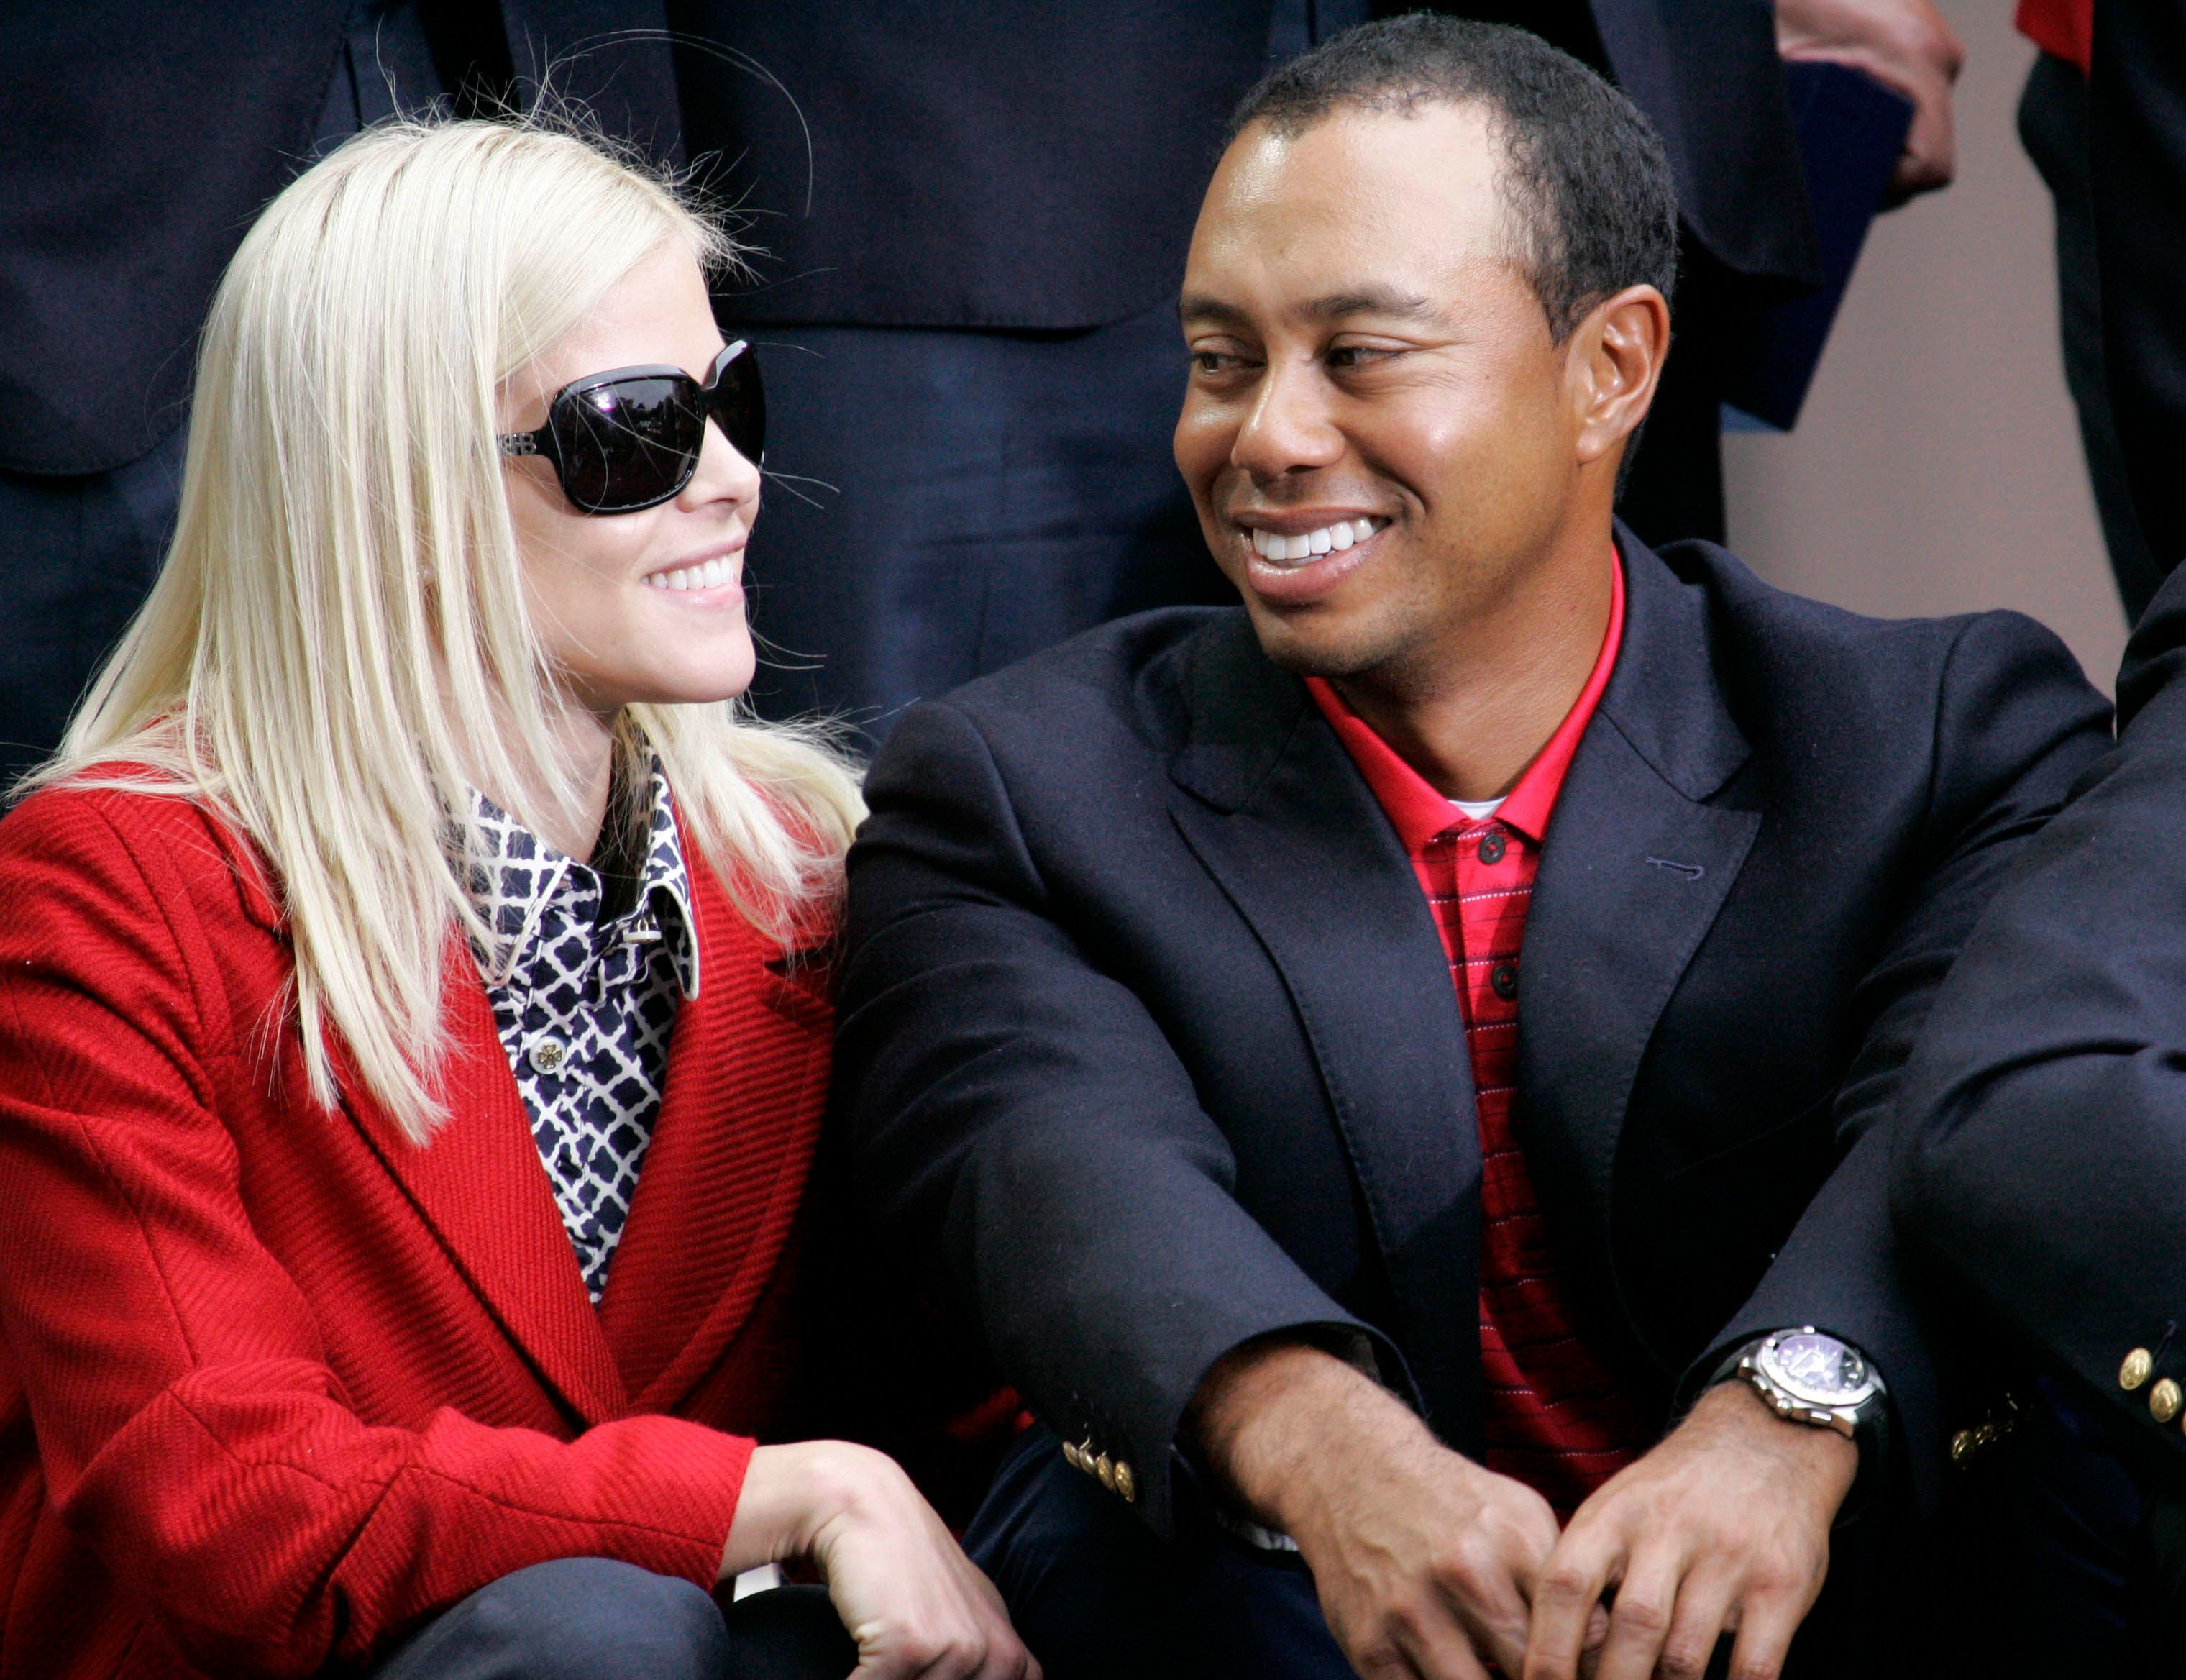 Tiger Woods Wife Elin Planning To Sleep With Other Golfers - 2019 year